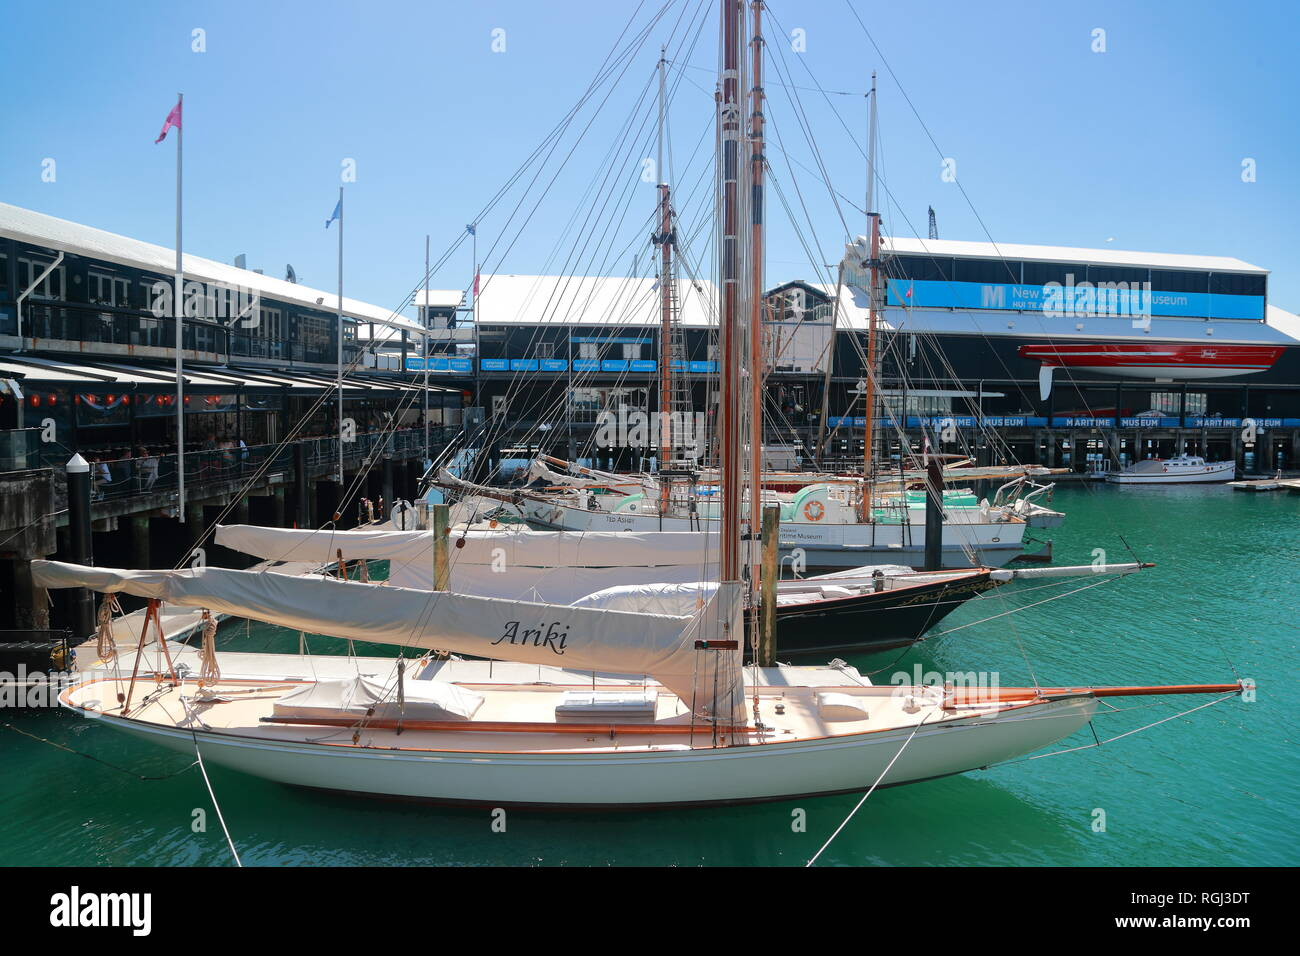 Sailing boats moored in Auckland harbour, New Zealand - Stock Image